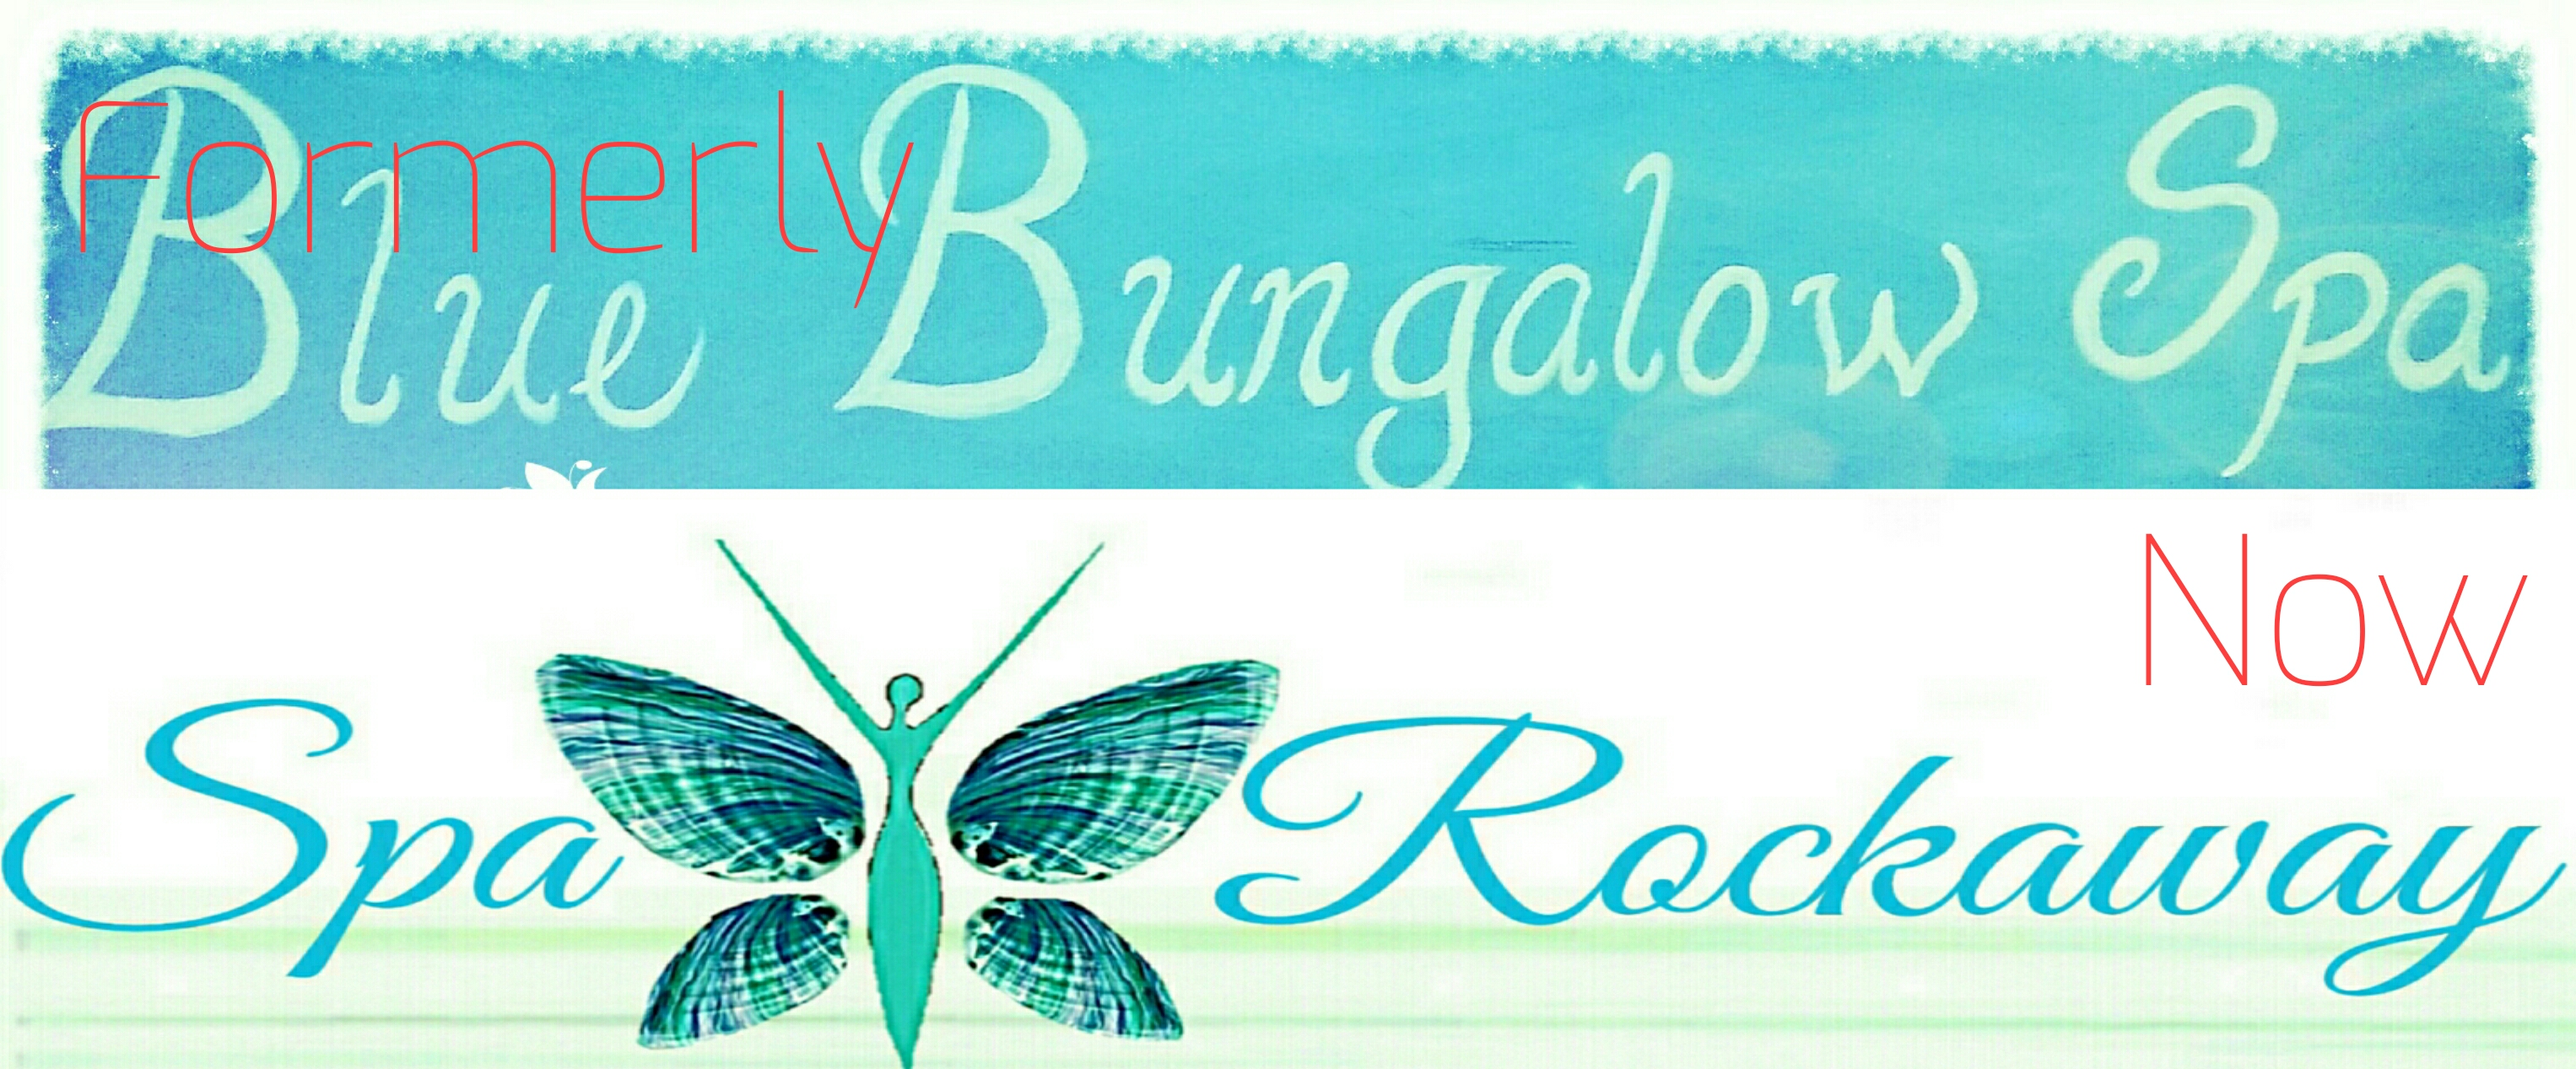 blue bungalow spa NOW Spa Rockaway, NY